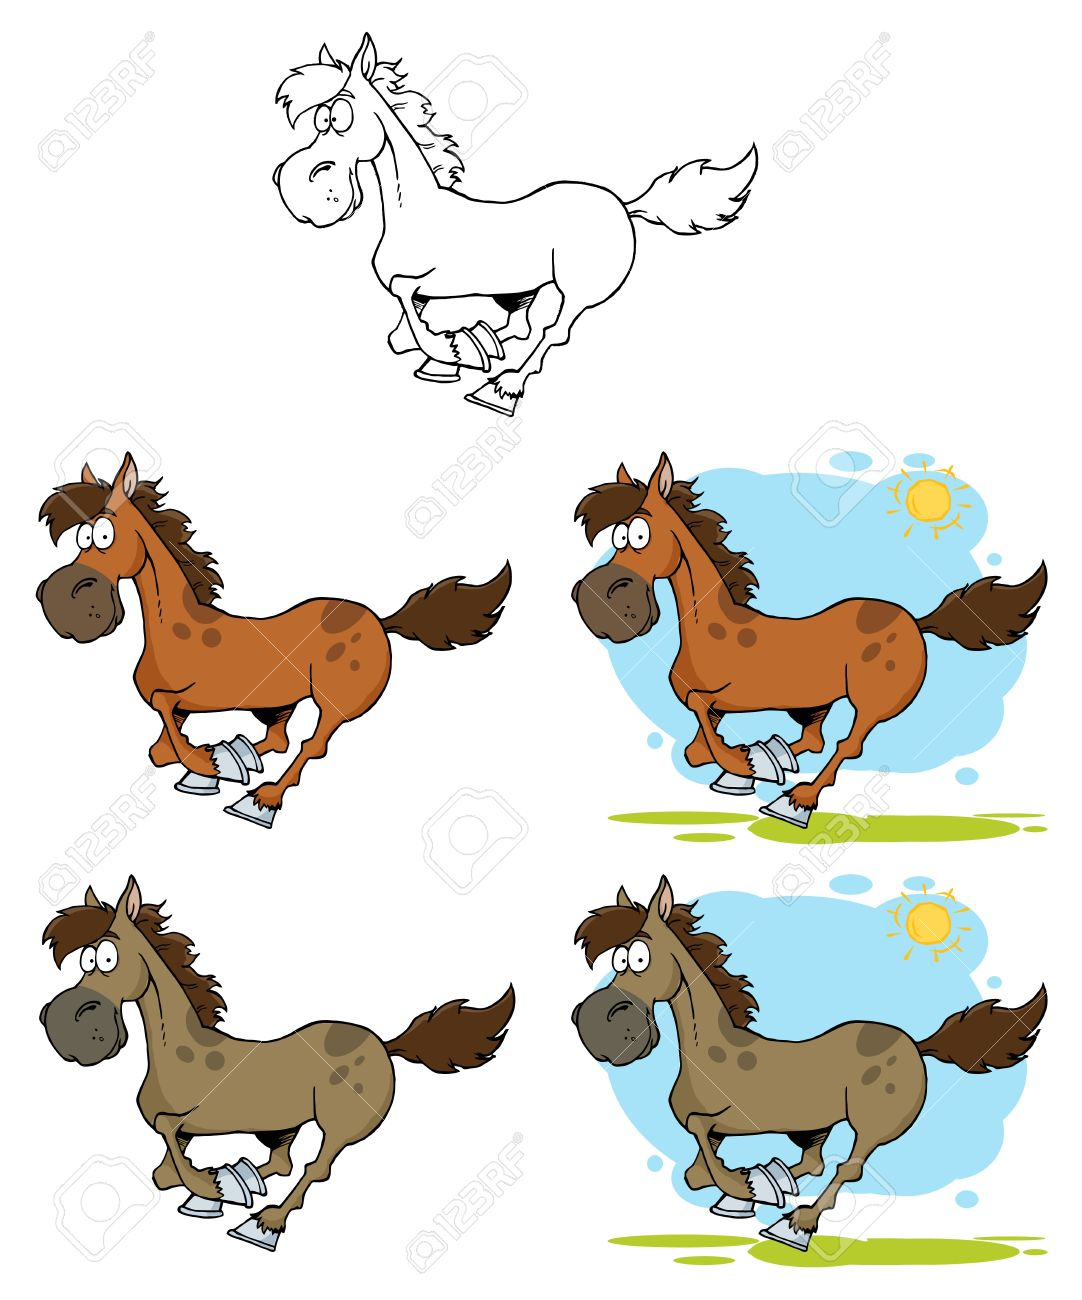 Cartoon Horses Running Royalty Free Cliparts Vectors And Stock Illustration Image 9901642